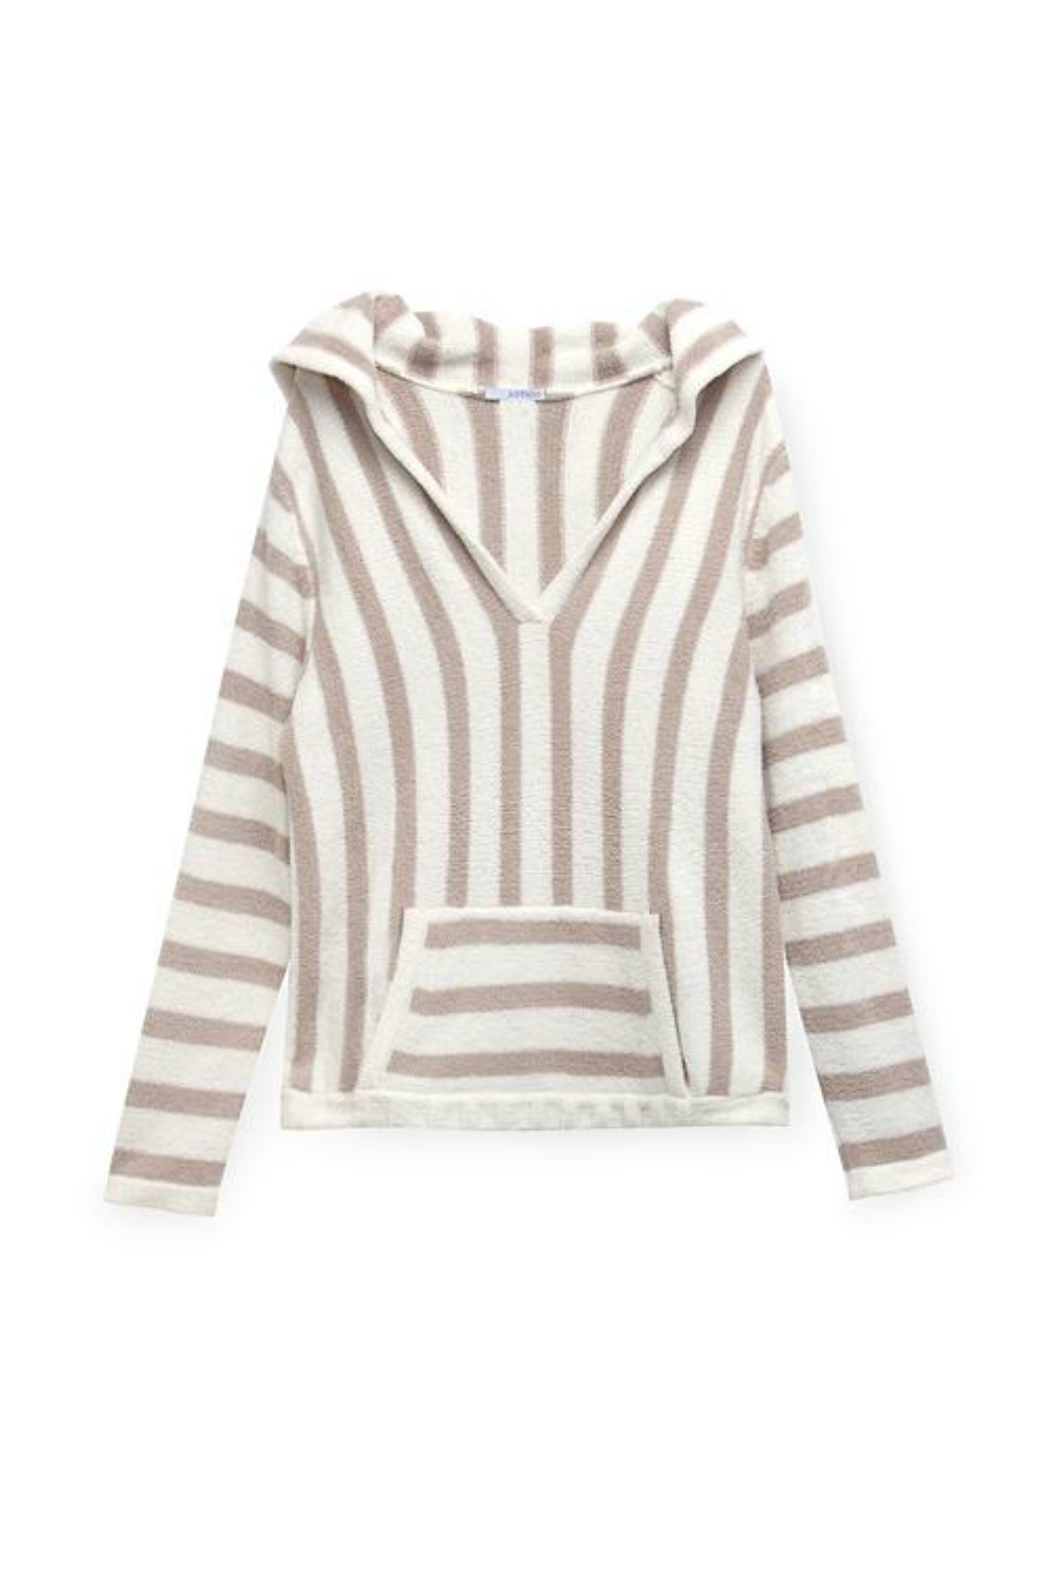 Astars Big Love Striped Soft Pullover - Side Cropped Image